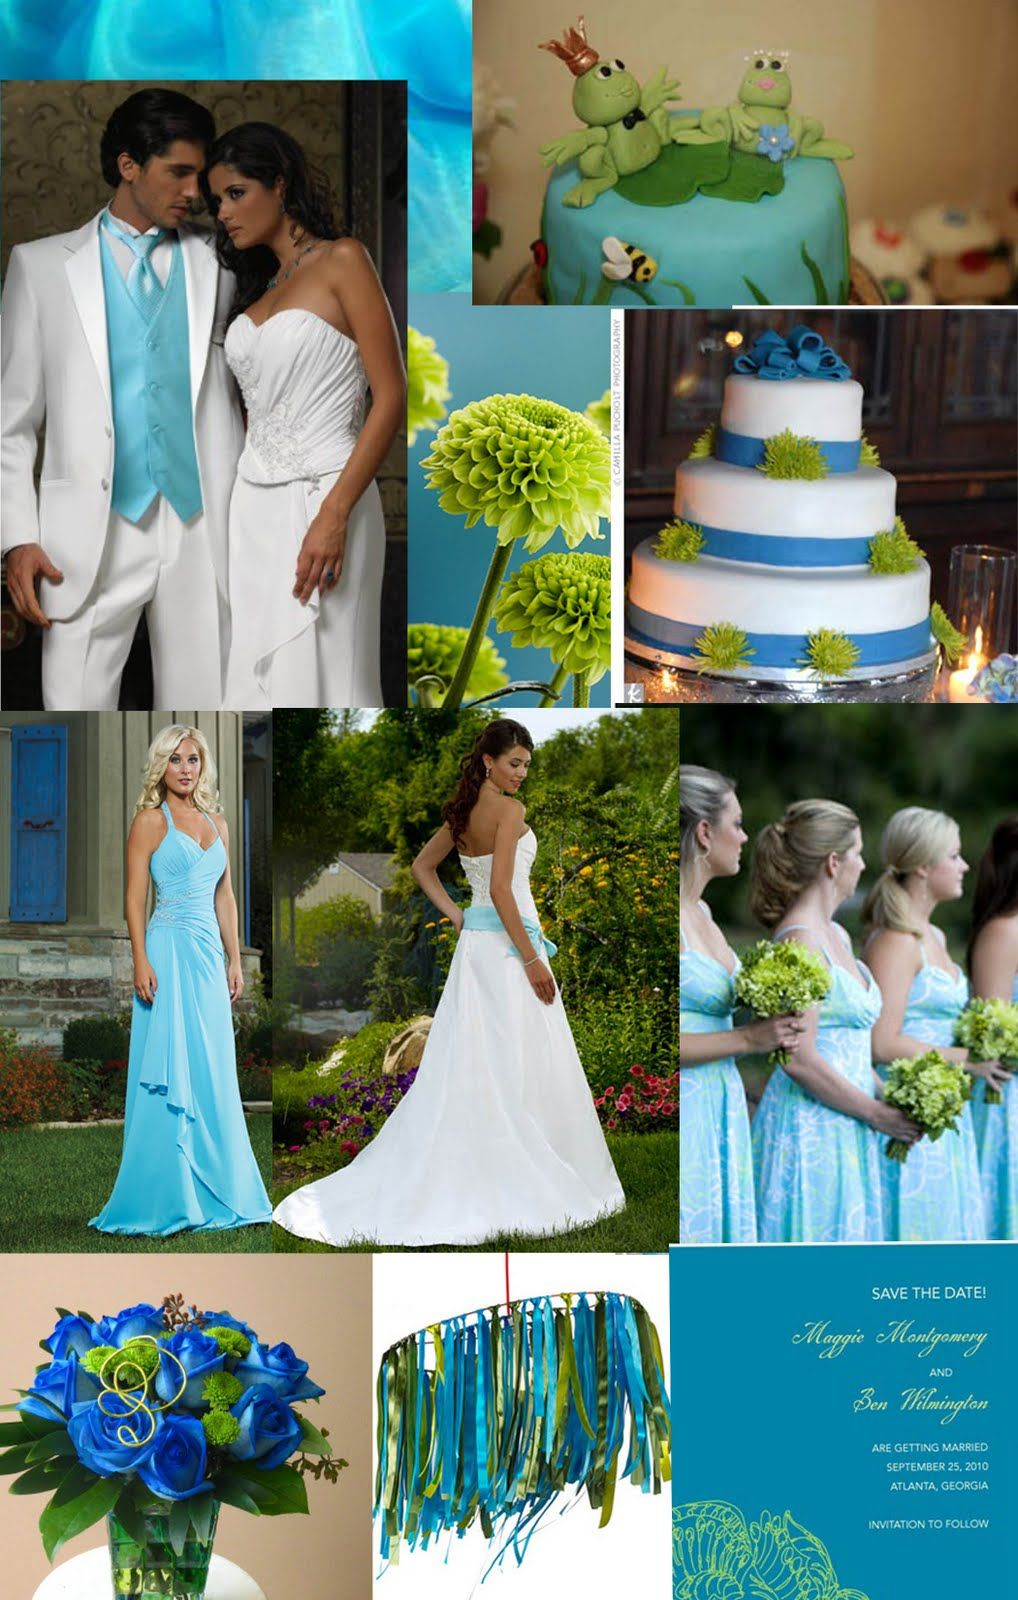 Wedding colors and themes wedding color ideas source 3bp wedding colors and themes wedding color ideas source 3bpspot junglespirit Choice Image